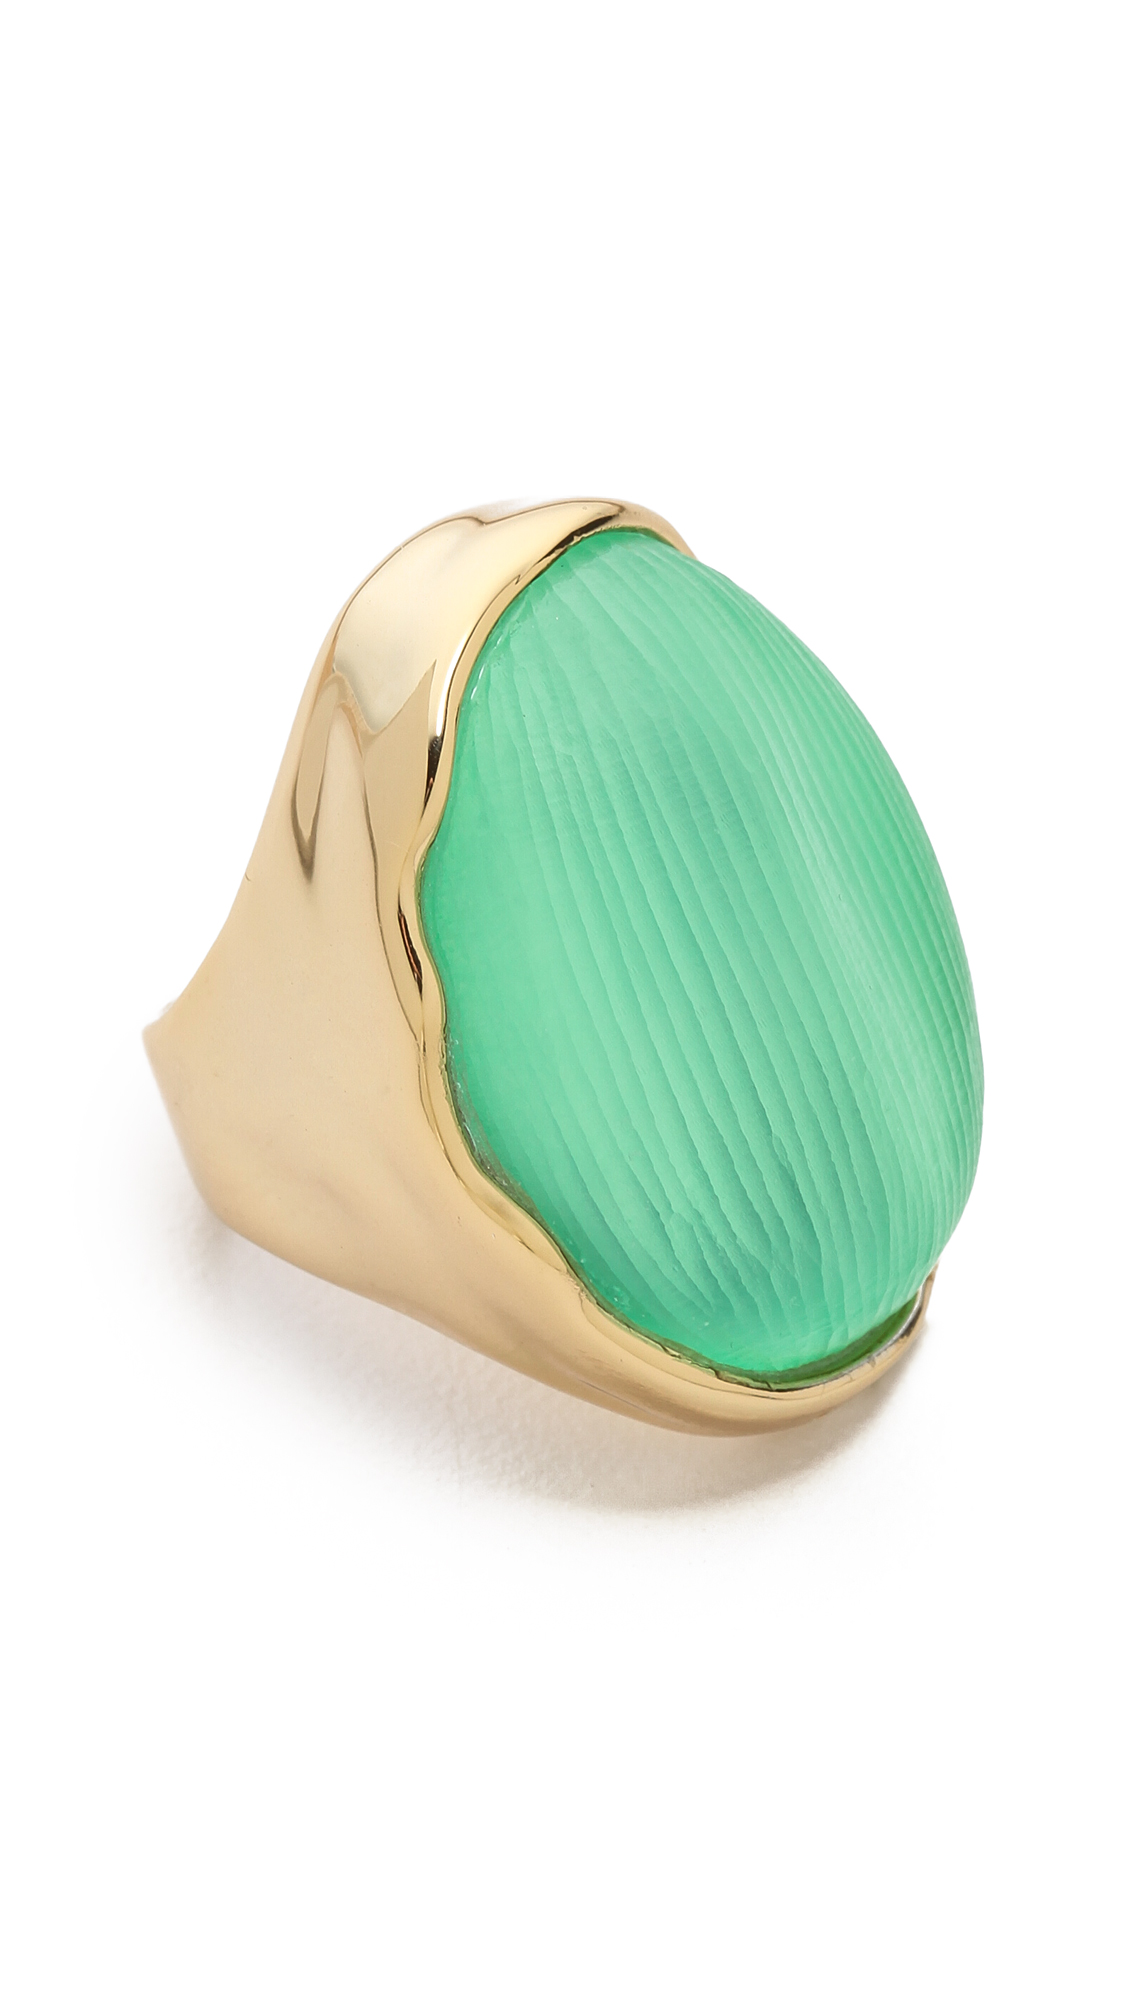 The Cocktail Ring